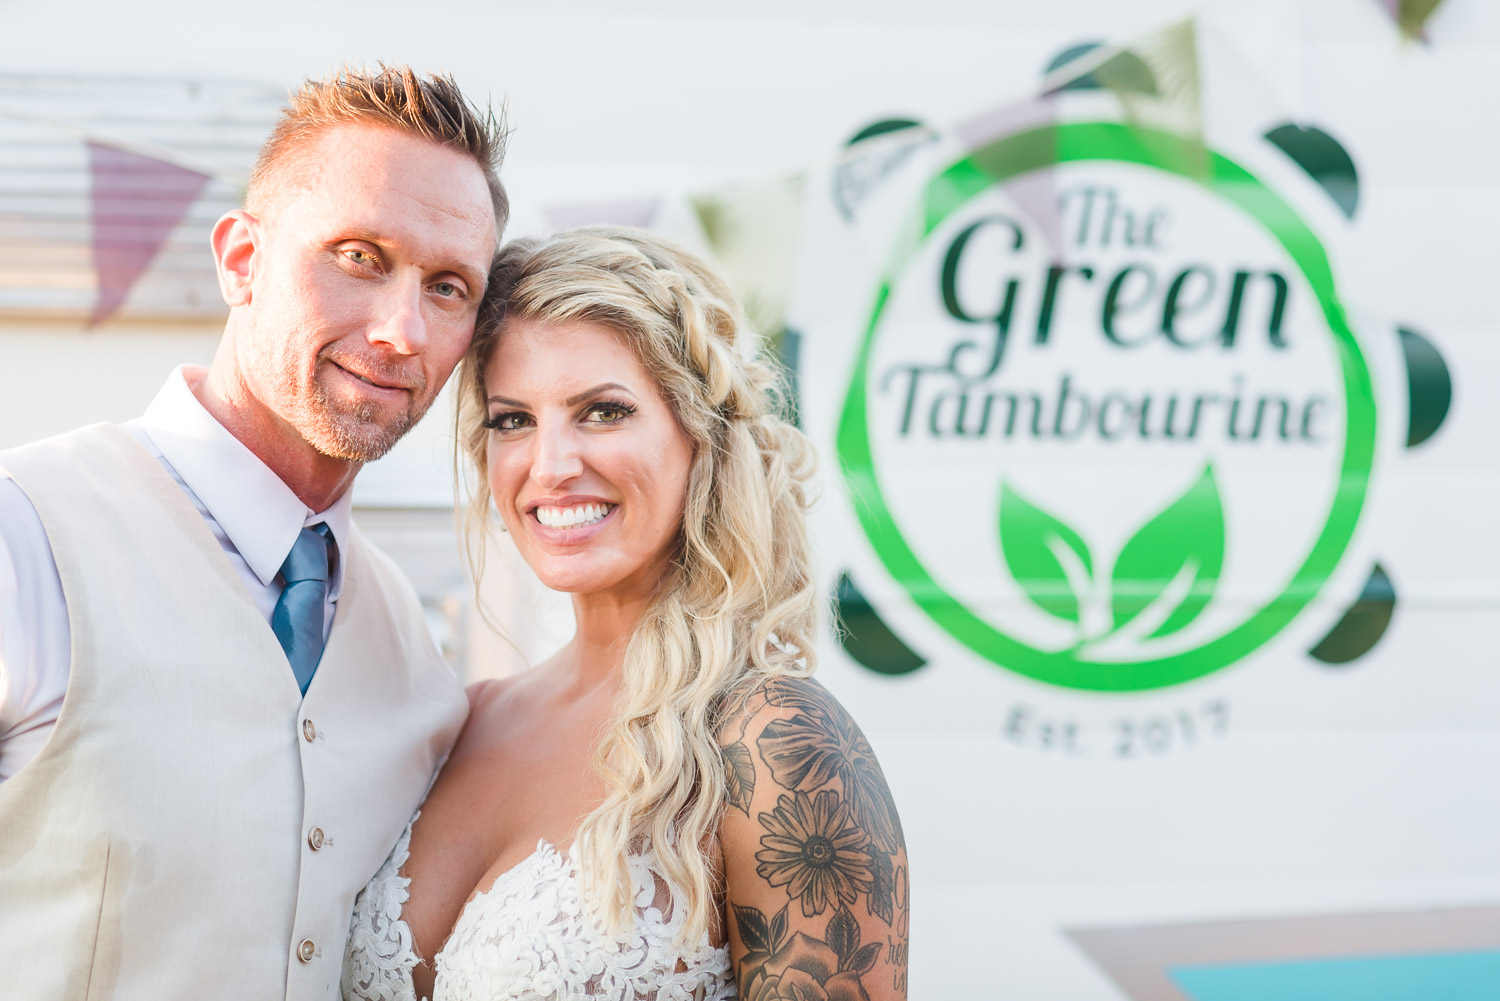 newlyweds in front of the Green Tambourine food truck from Chattanooga TN